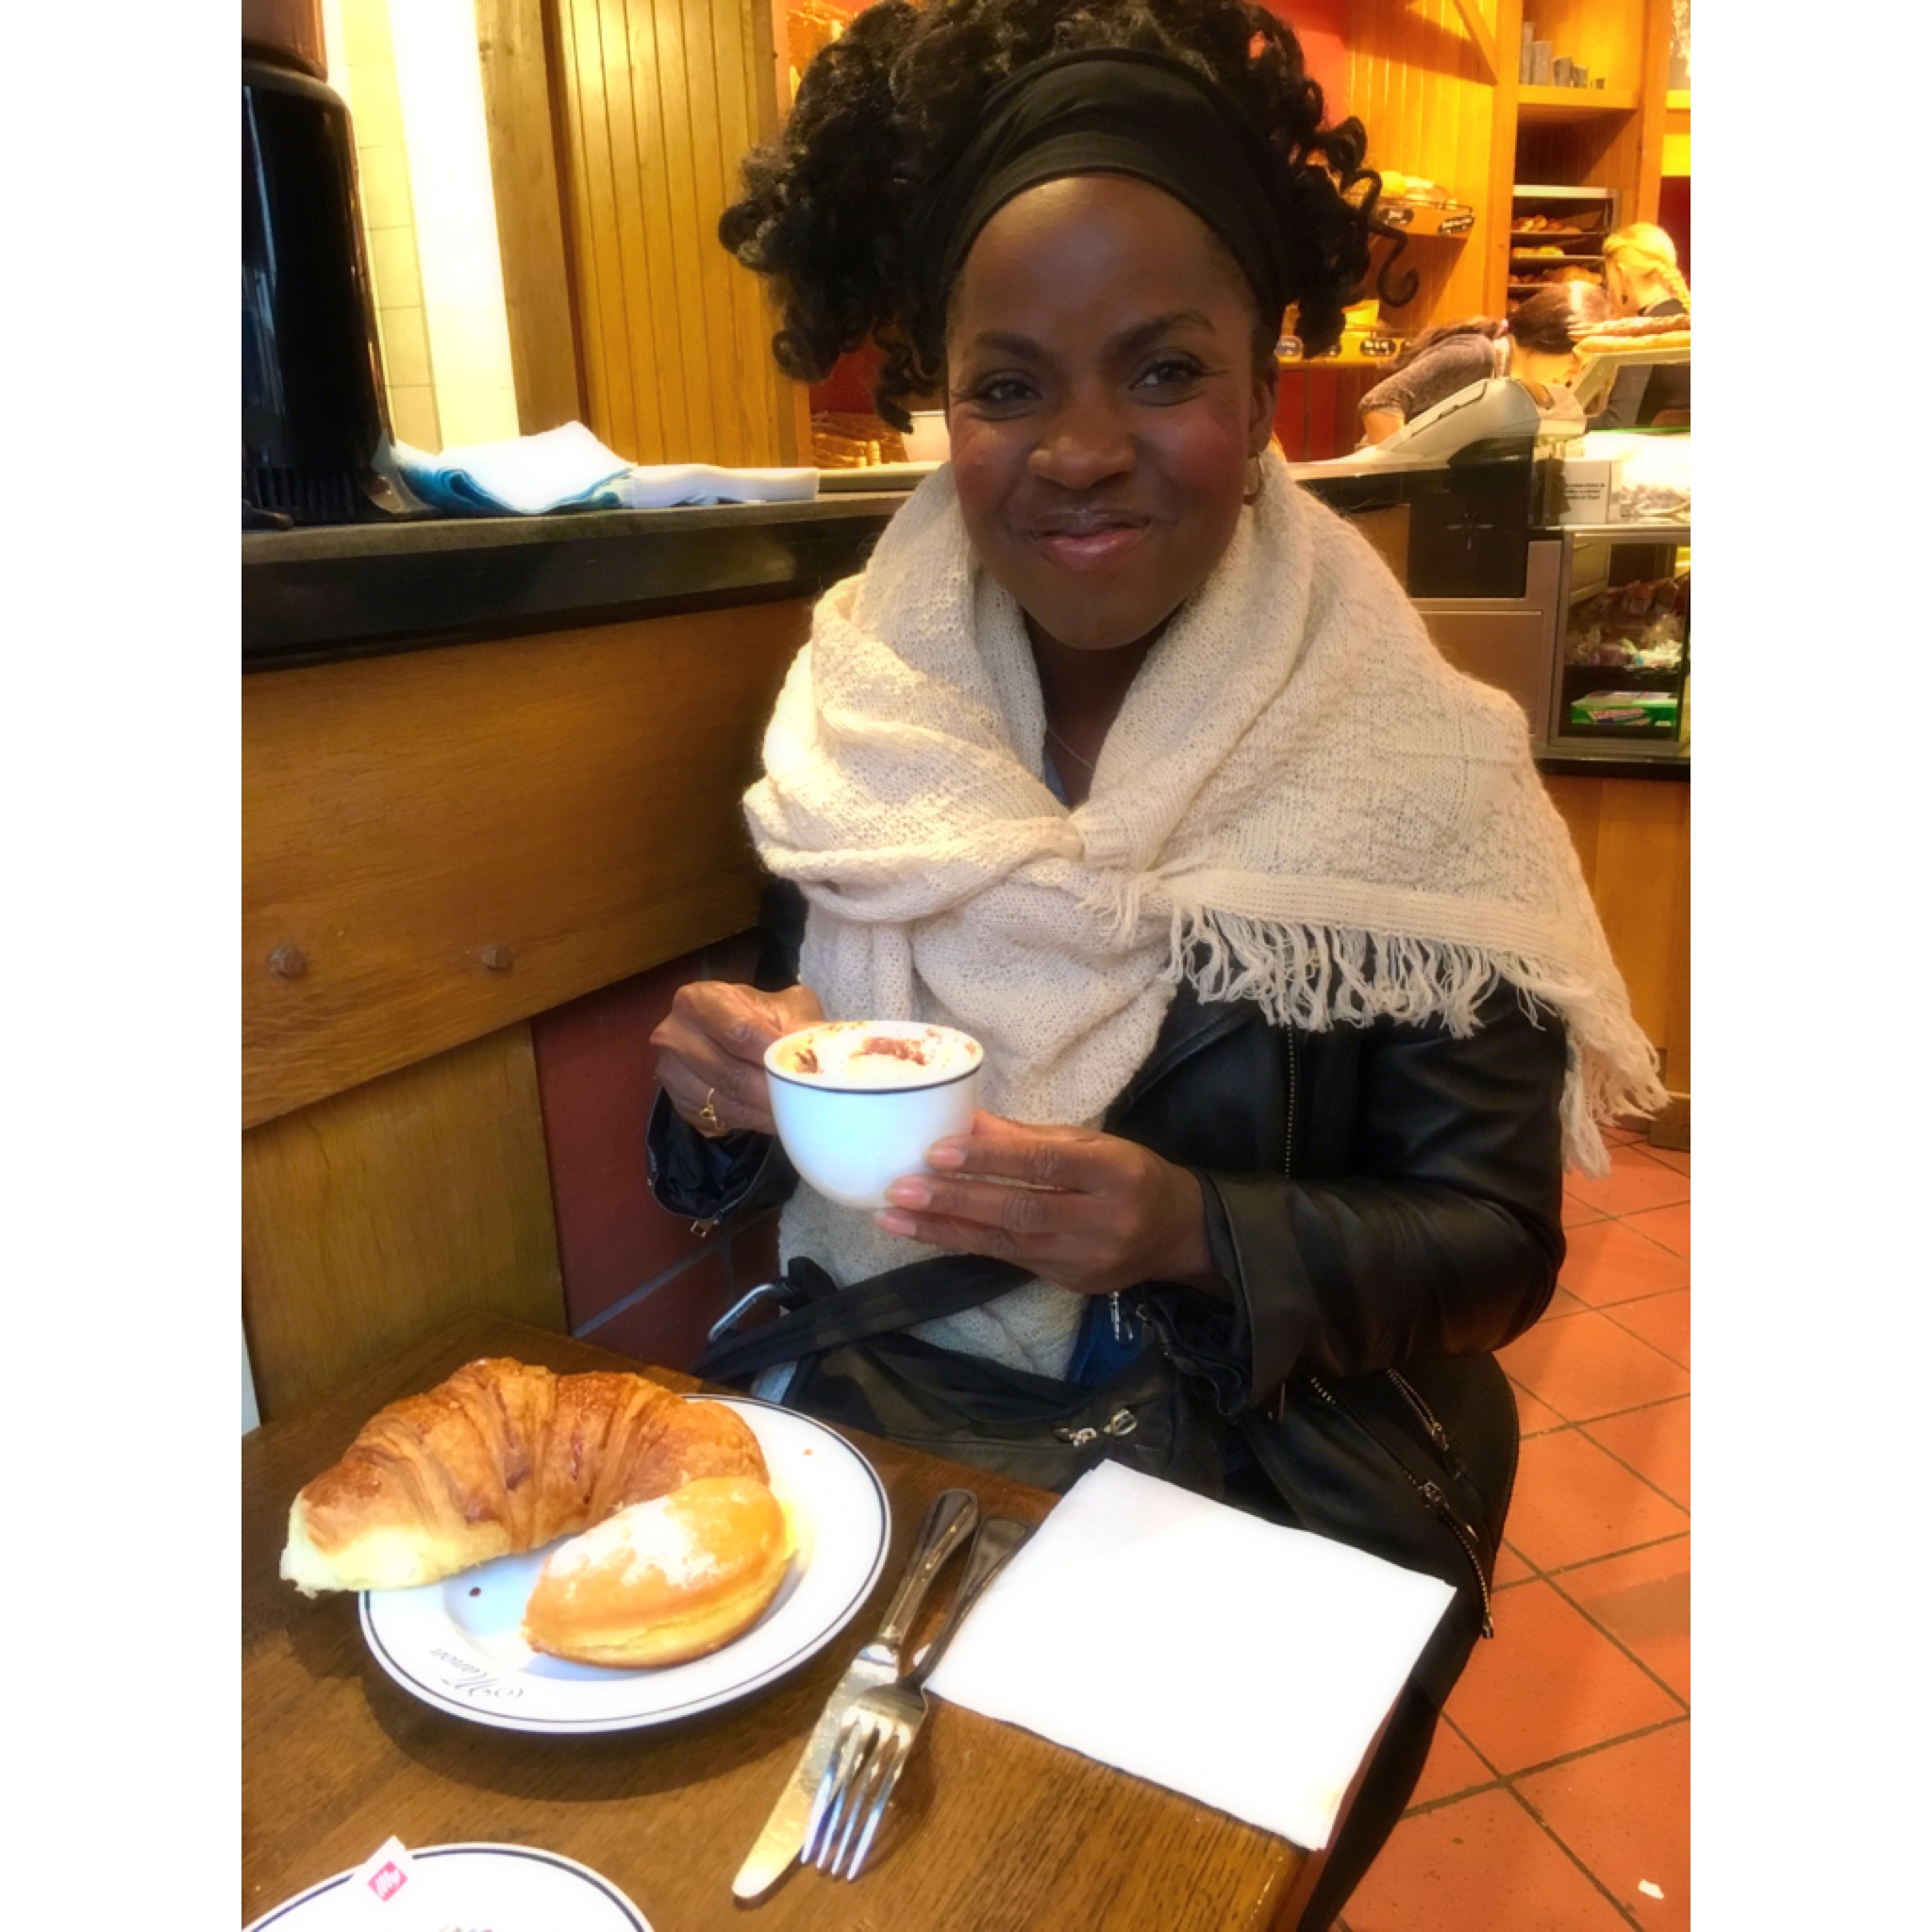 Mission Accomplished: Great art, beautiful city covered in fall leaves, a croissant and cappuccino! Fall into Paris!